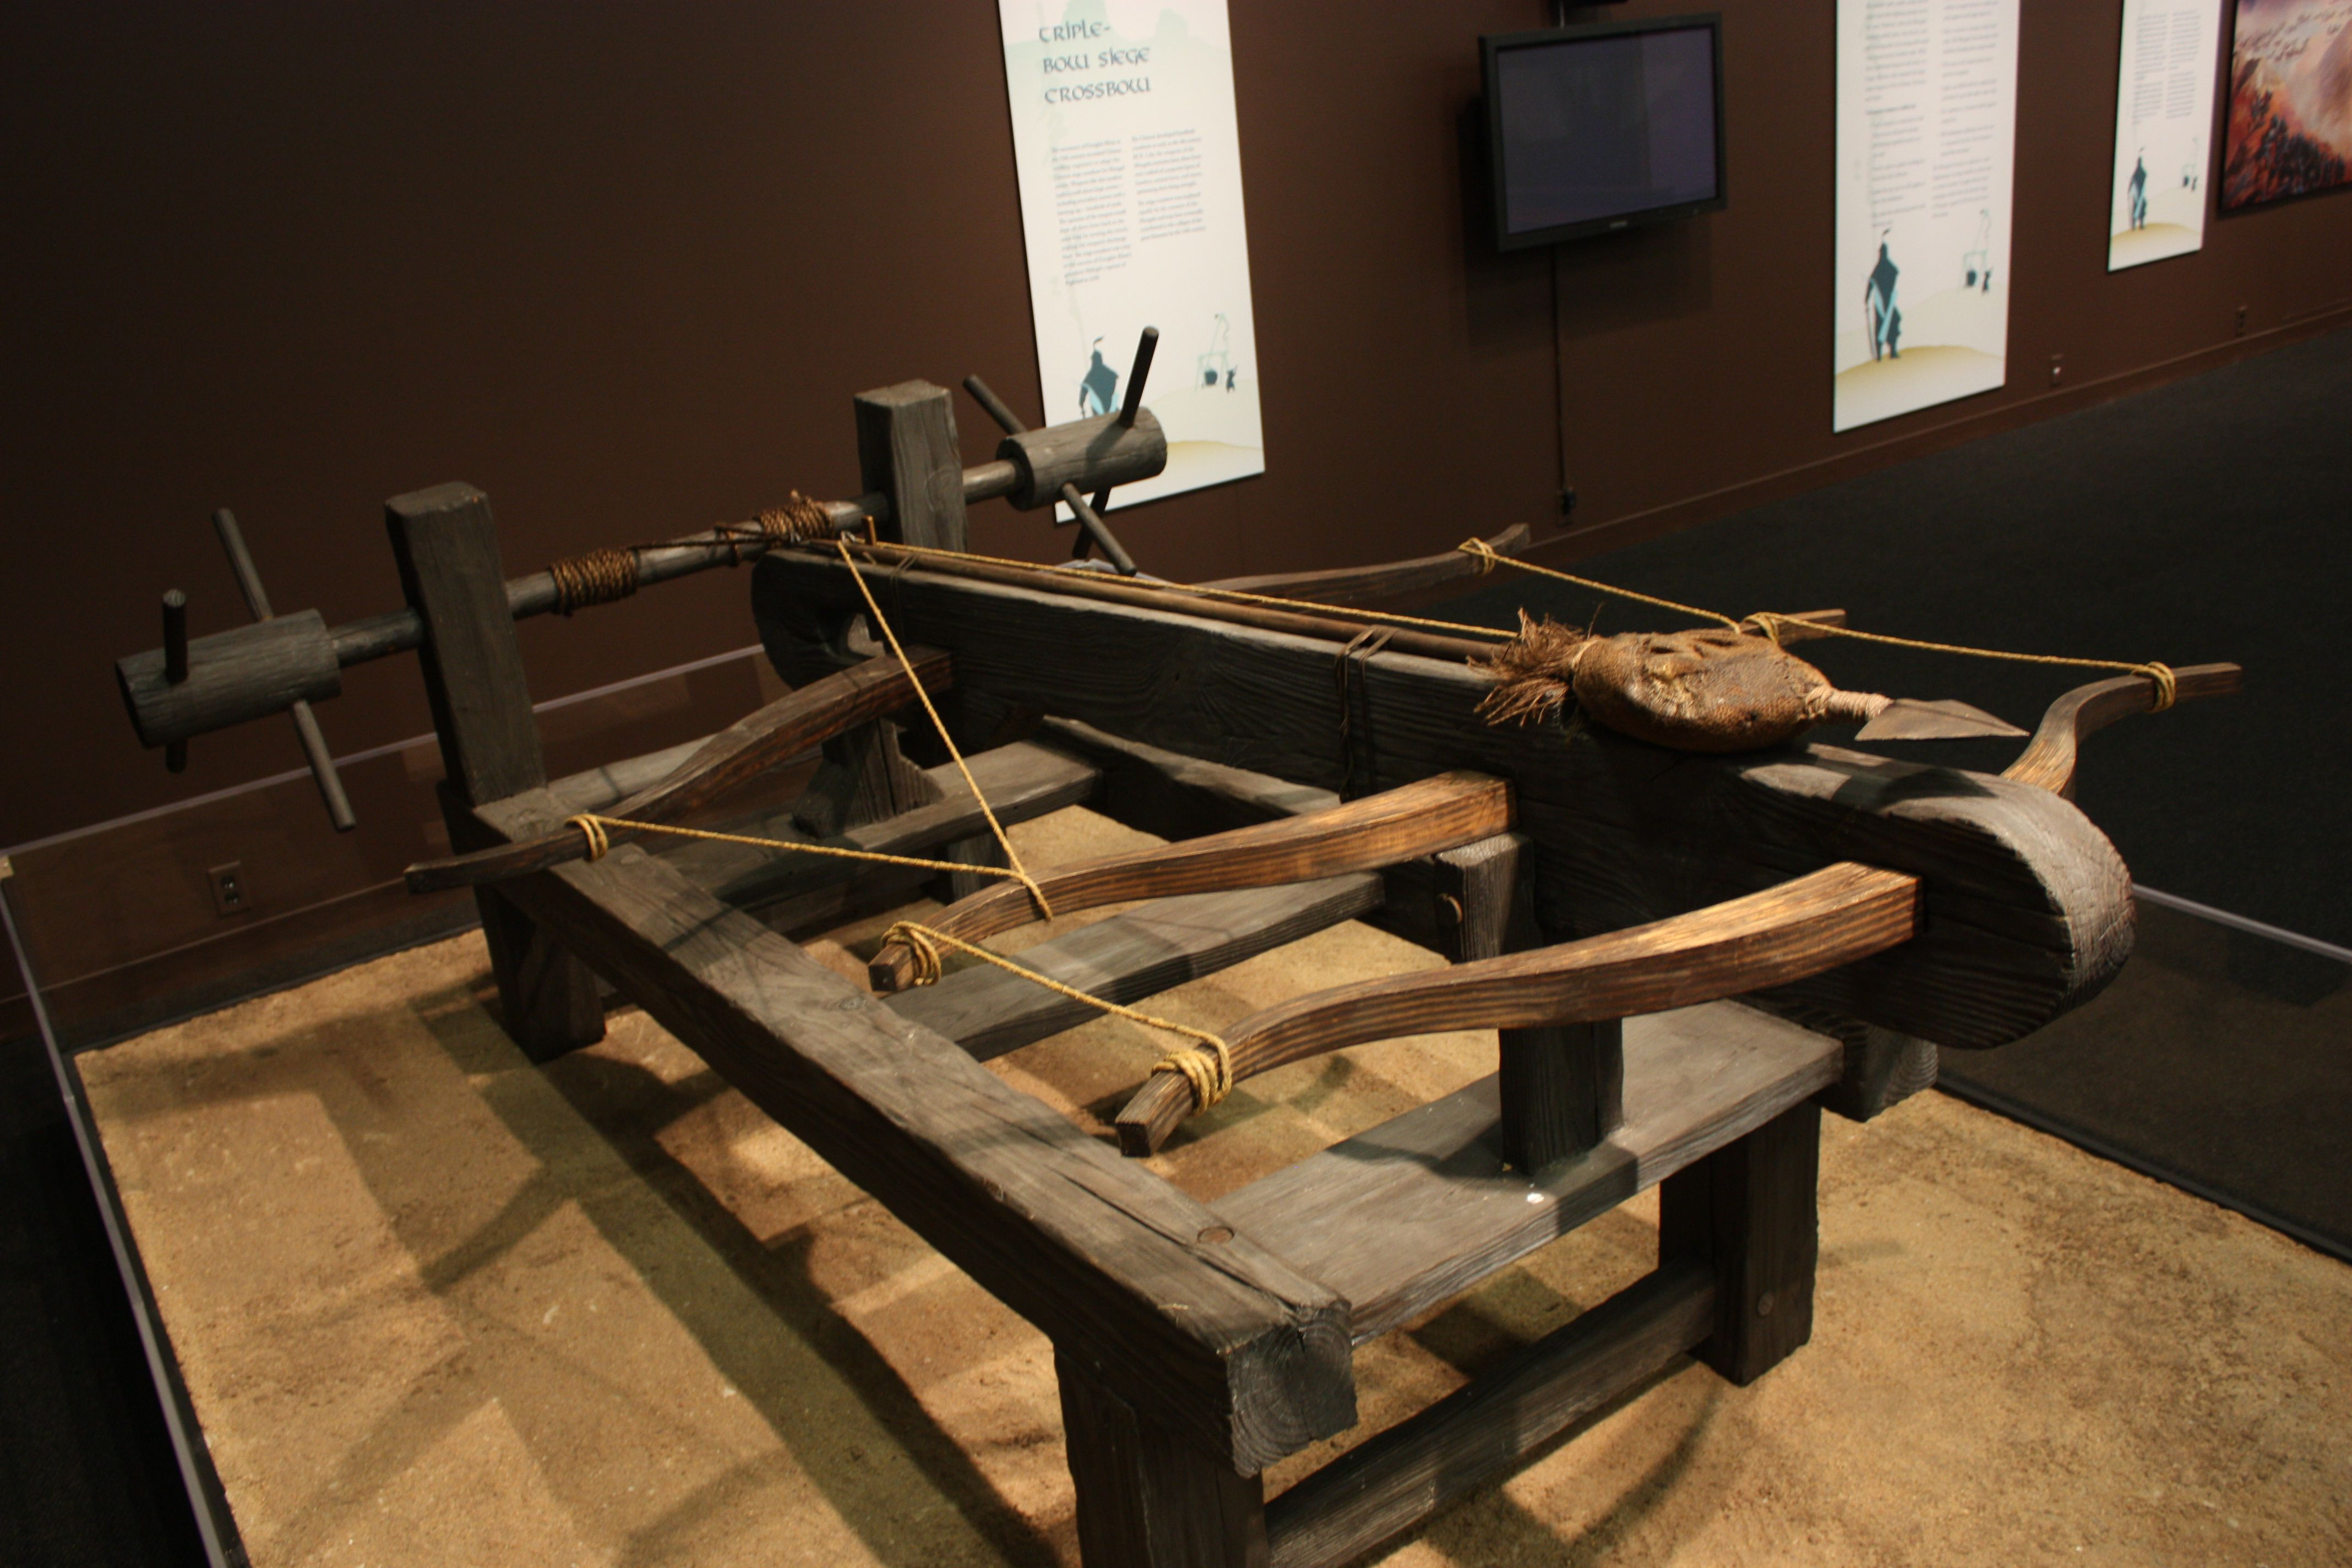 Genghis Khan's hordes had incredible archery skills, especially from horseback.